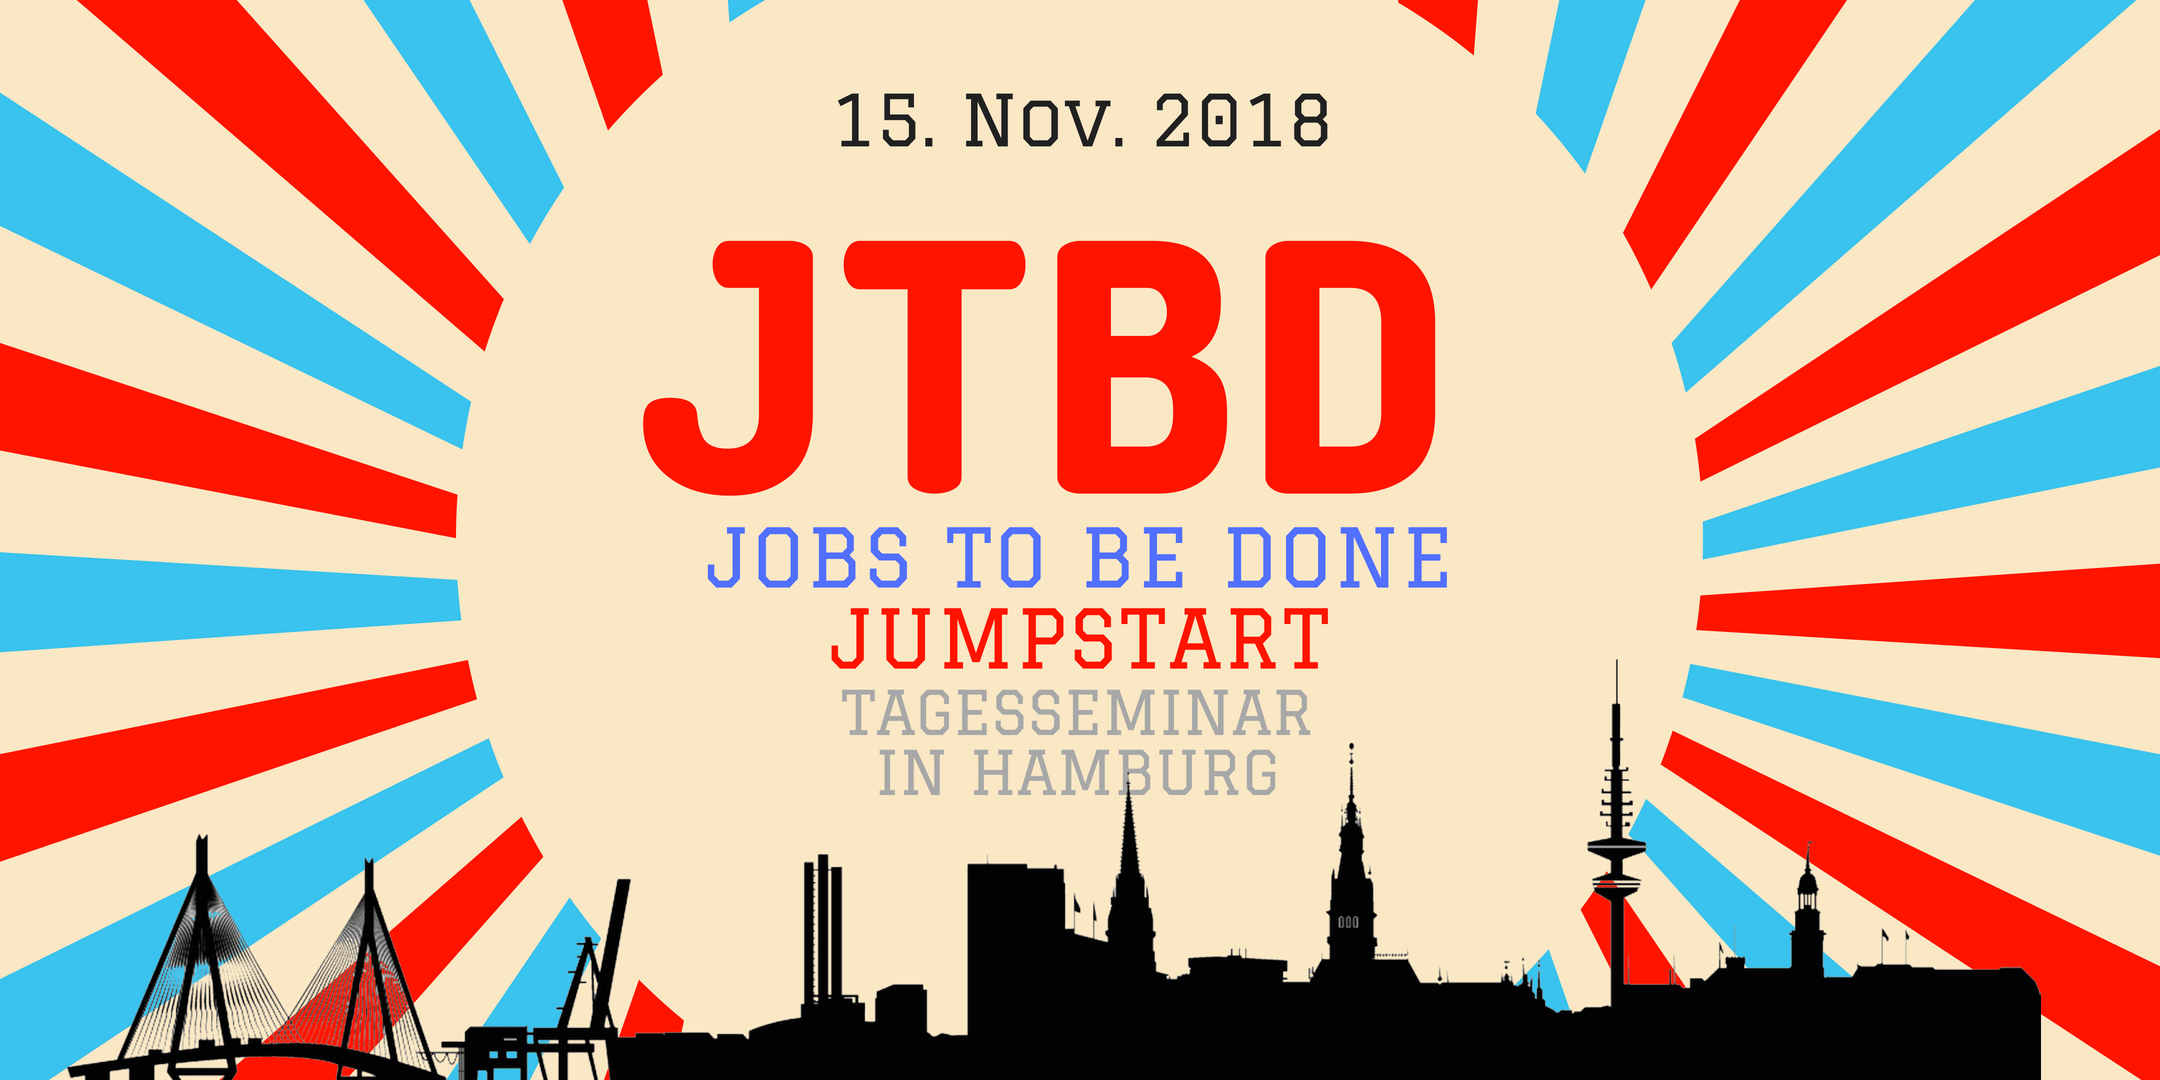 Jobs to Be Done Jumpstart - JTBD Tagesseminar